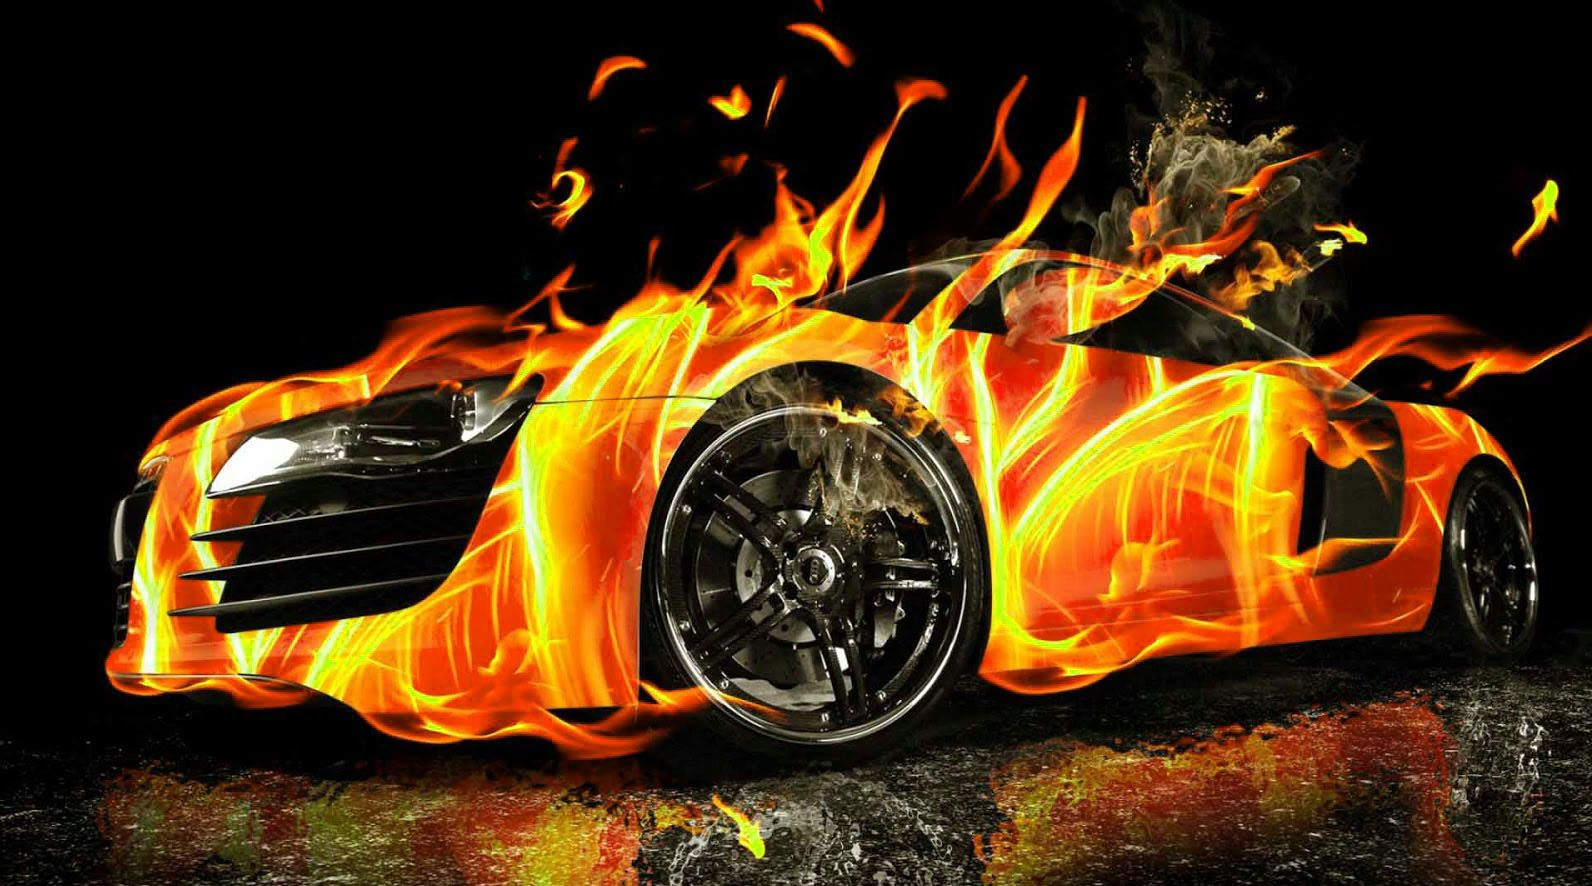 Donde Descargar Fondos De Pantalla Para Pc Cool Wallpapers Cars Sports Car Wallpaper Cool Cars